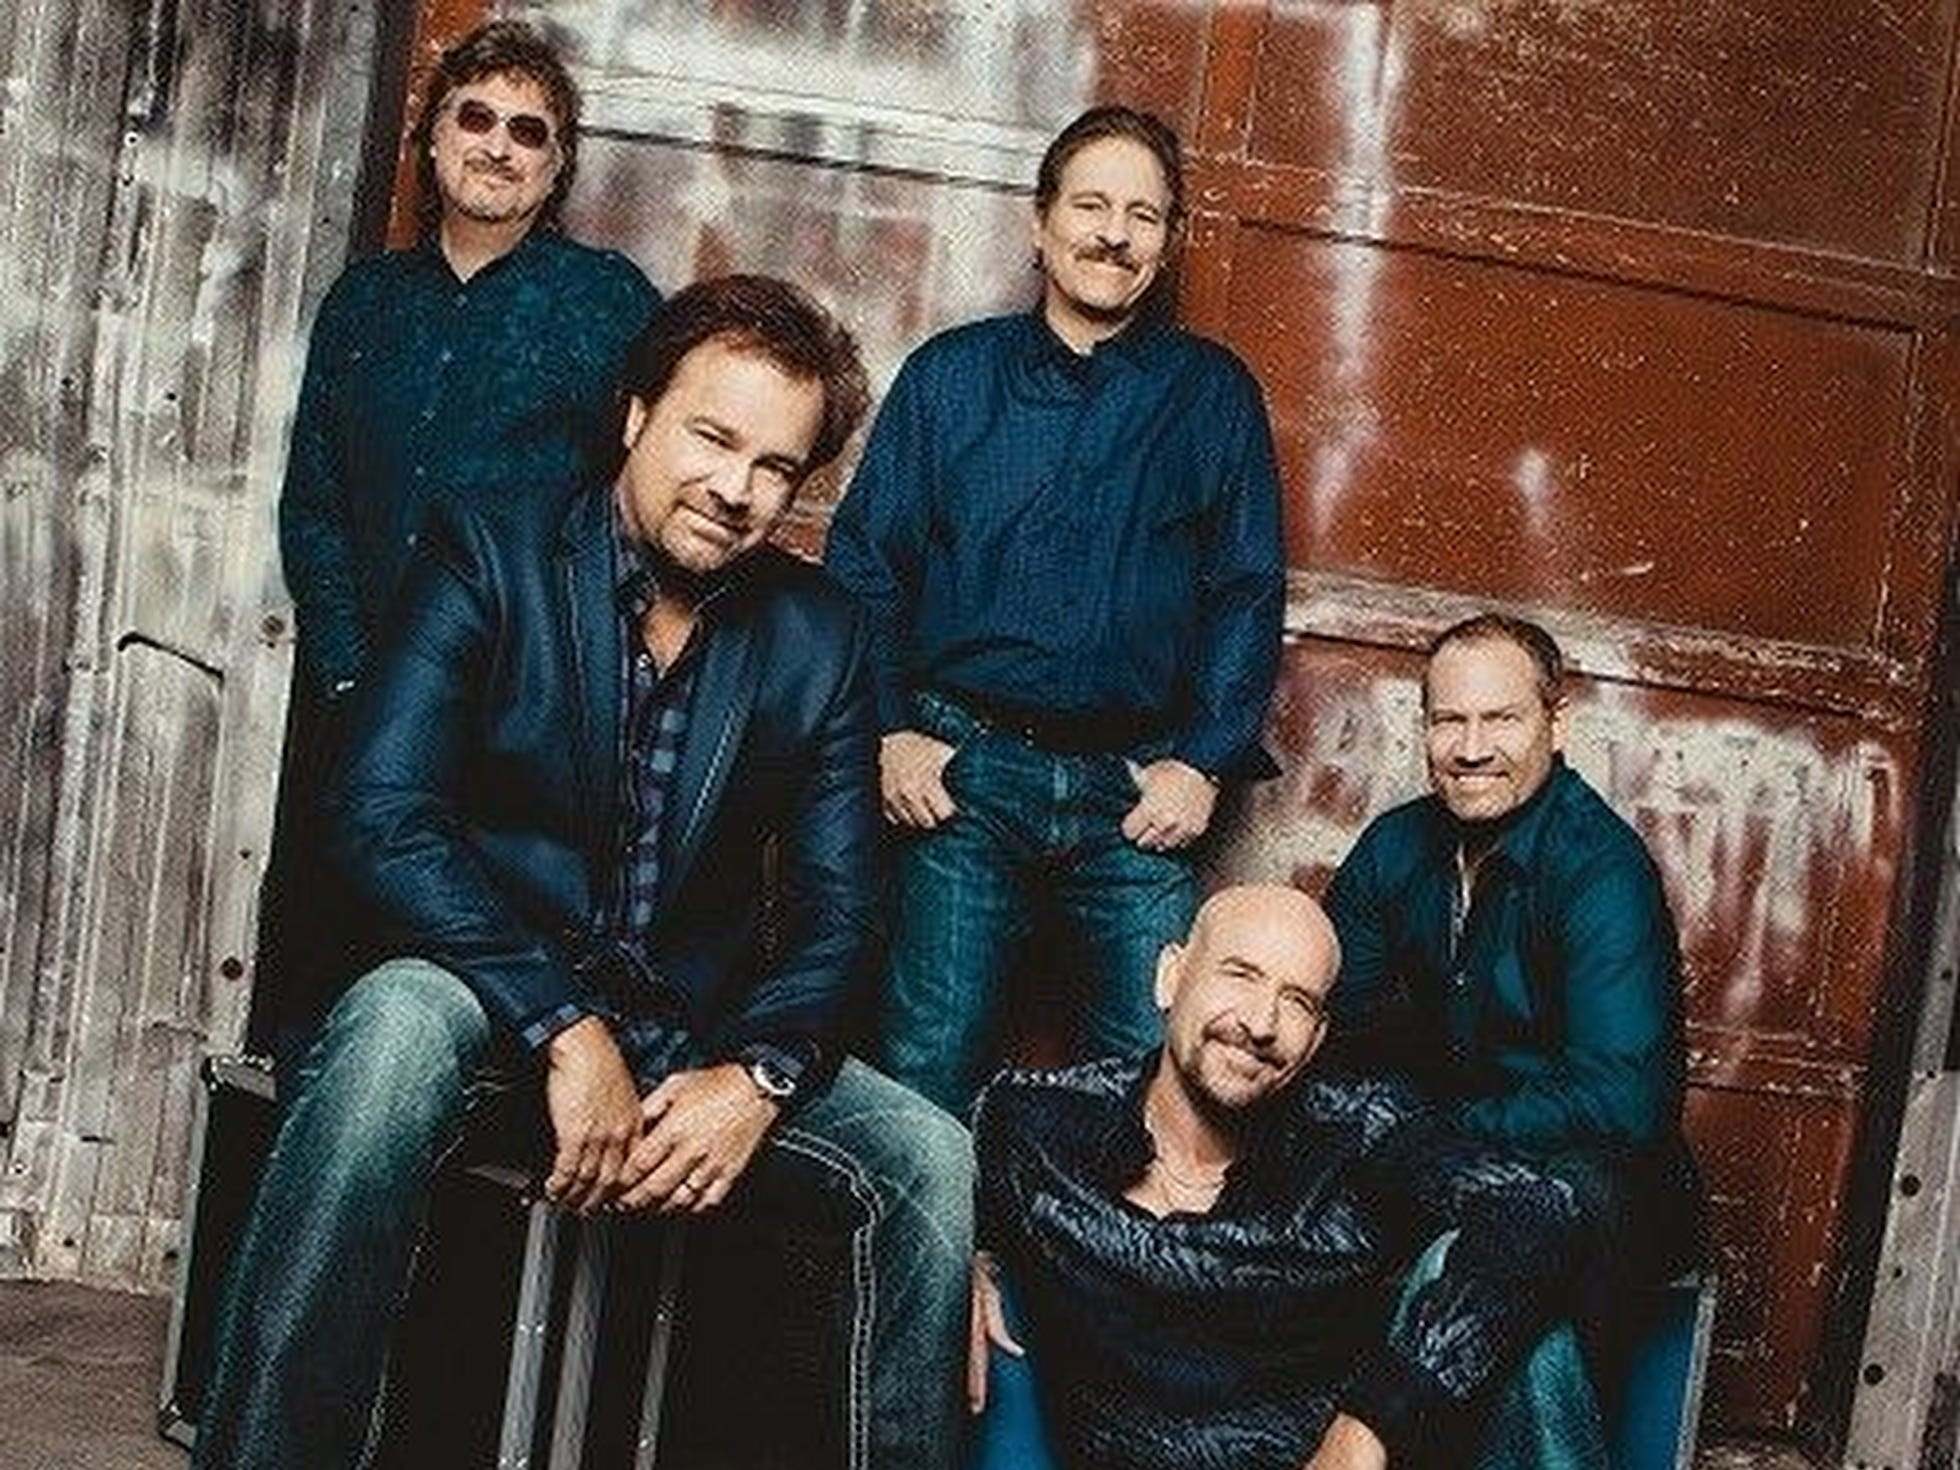 NOV. 19 